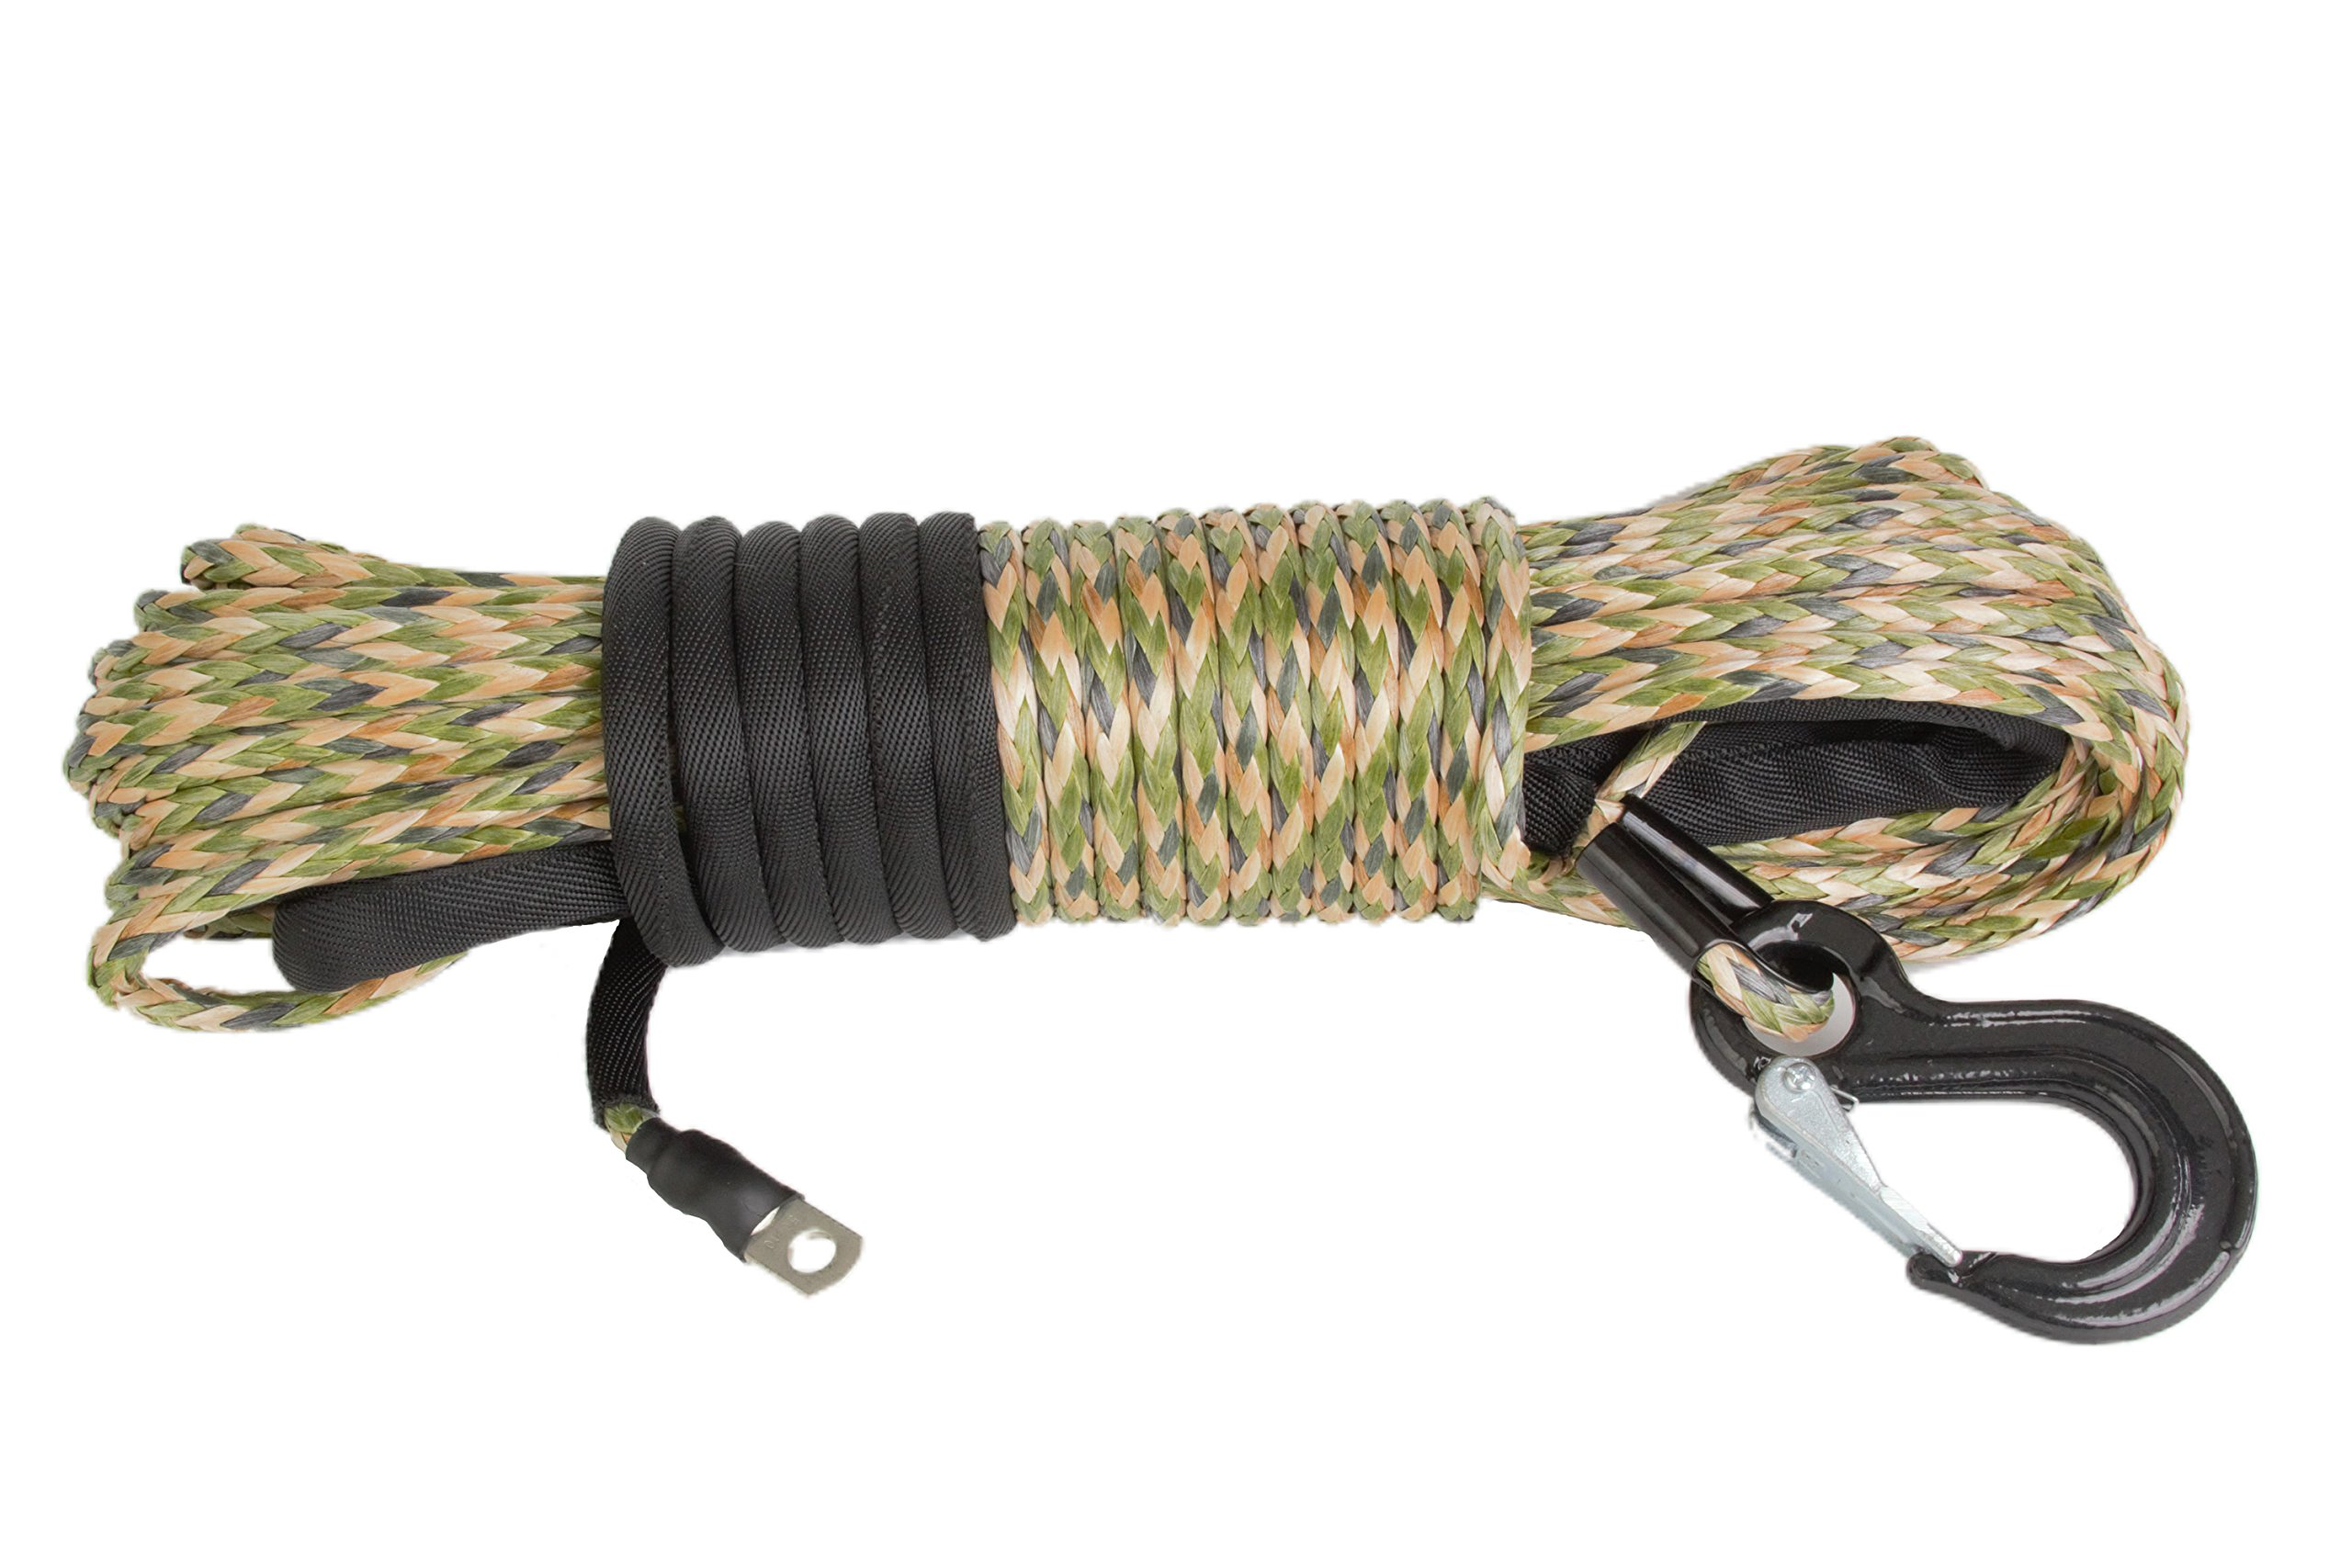 California Cordage 3/8'' x 100' Camo DynaTech UHMWPE Winch Rope with G80 Forged Hook by California Cordage (Image #1)